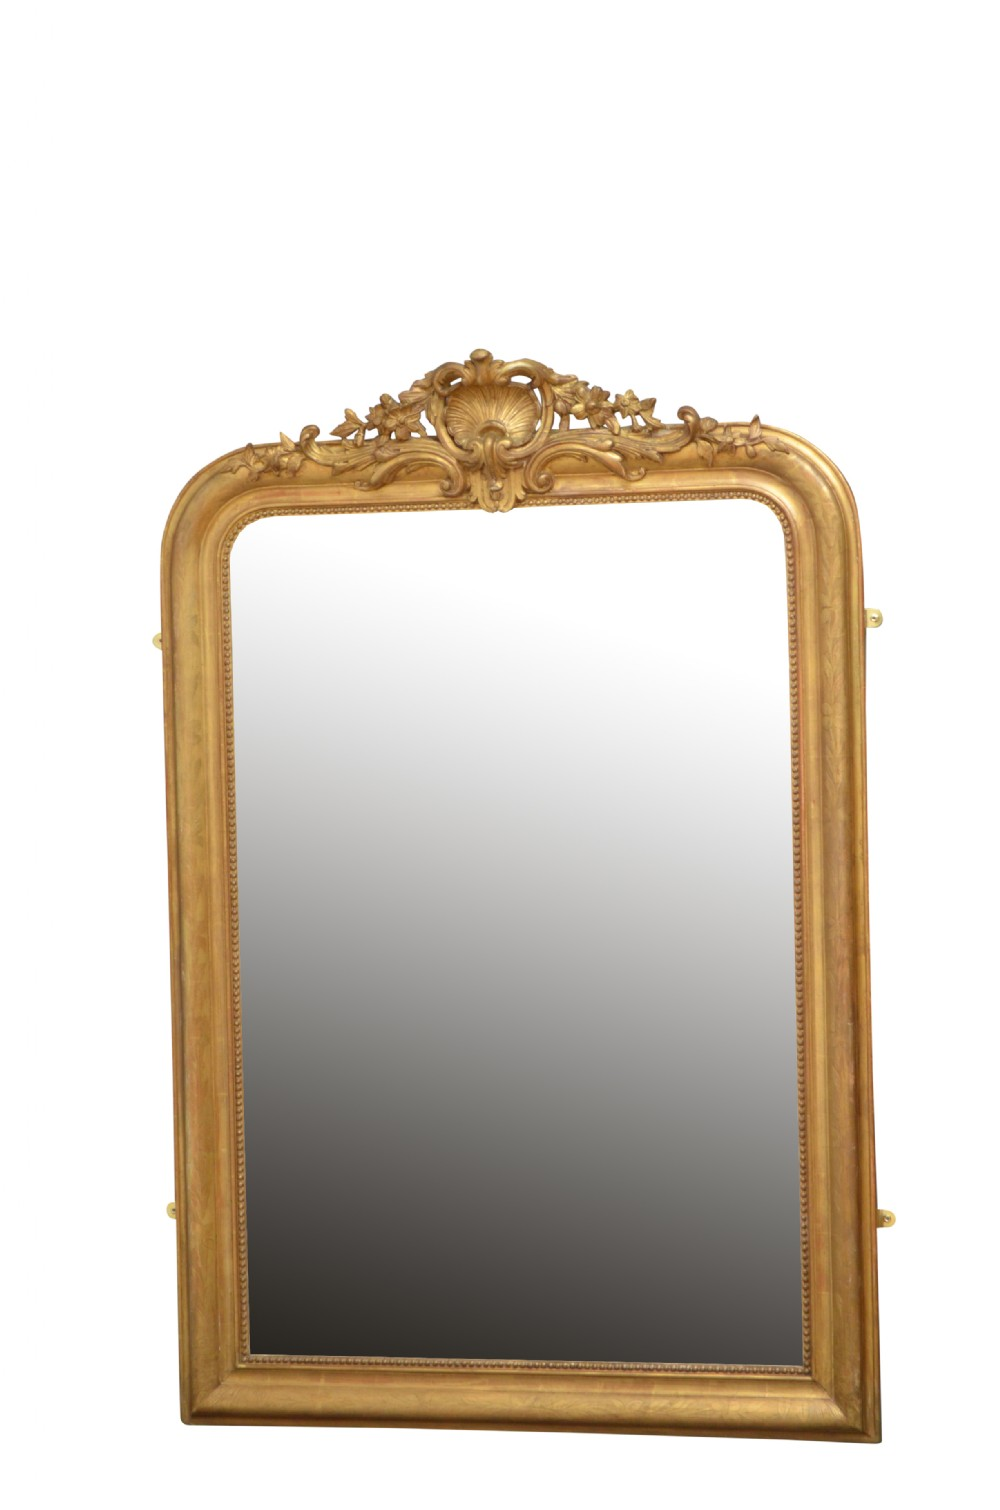 19th century french giltwood mirror